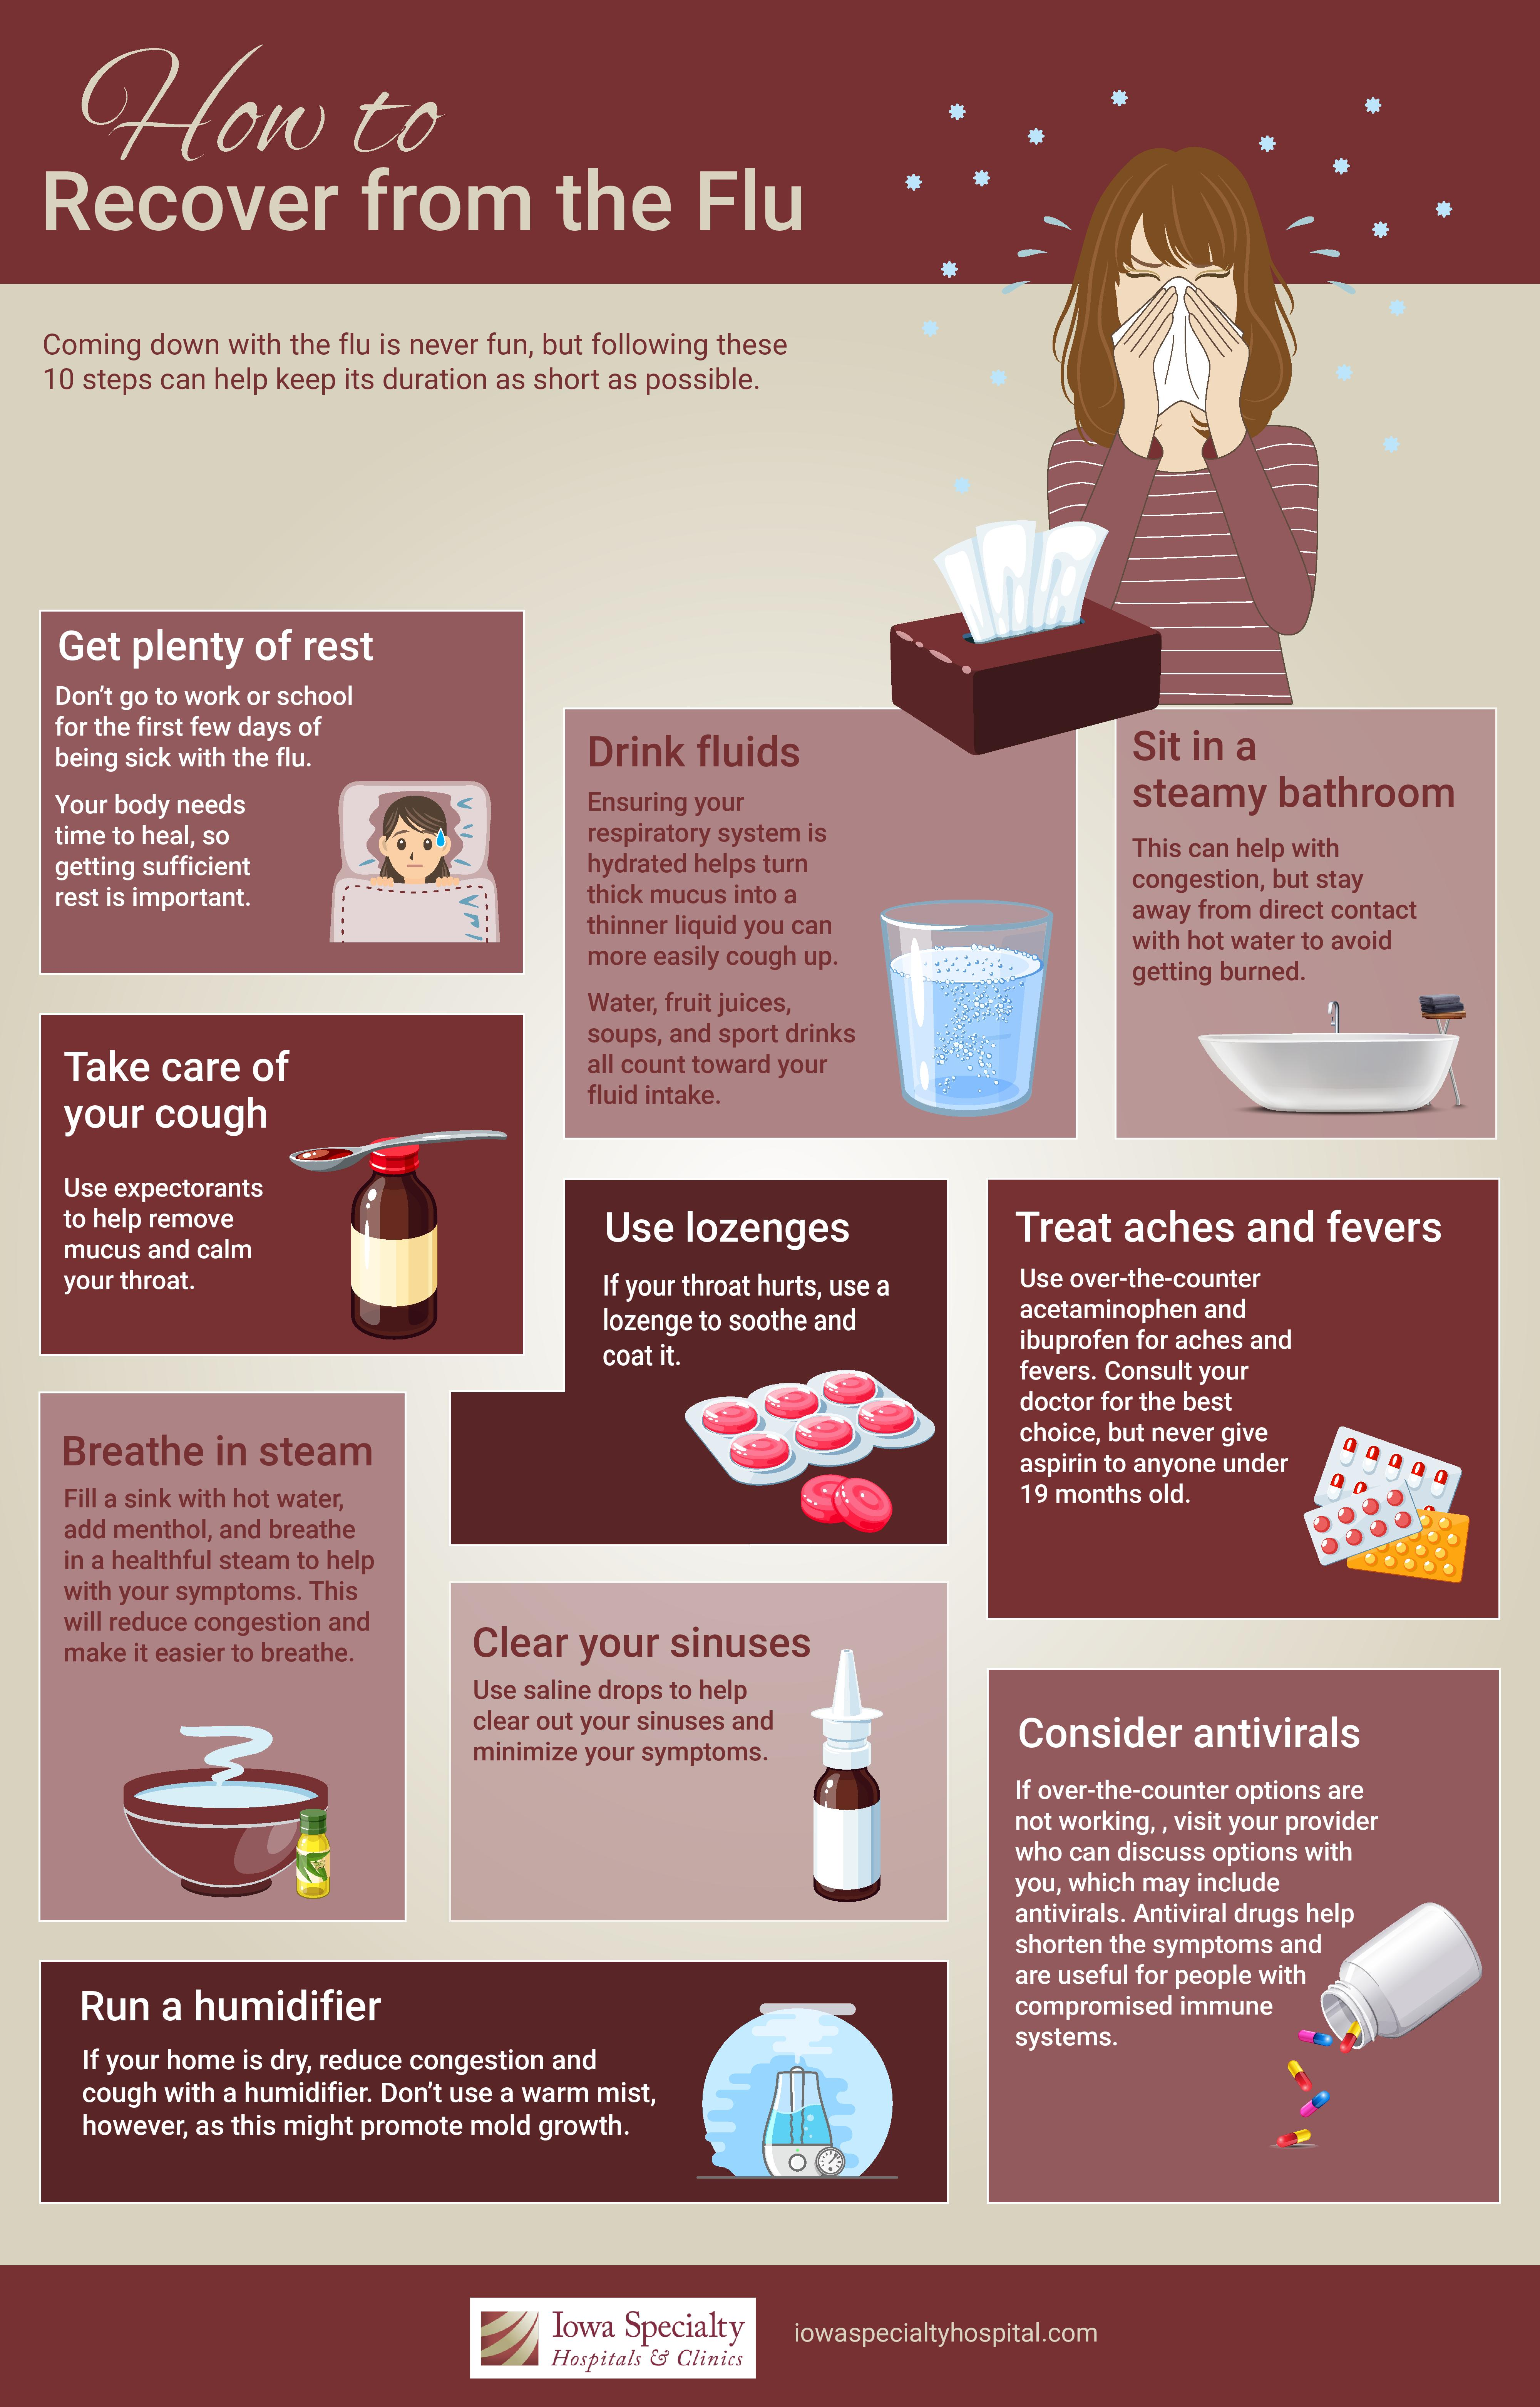 How to Recover From the Flu infographic